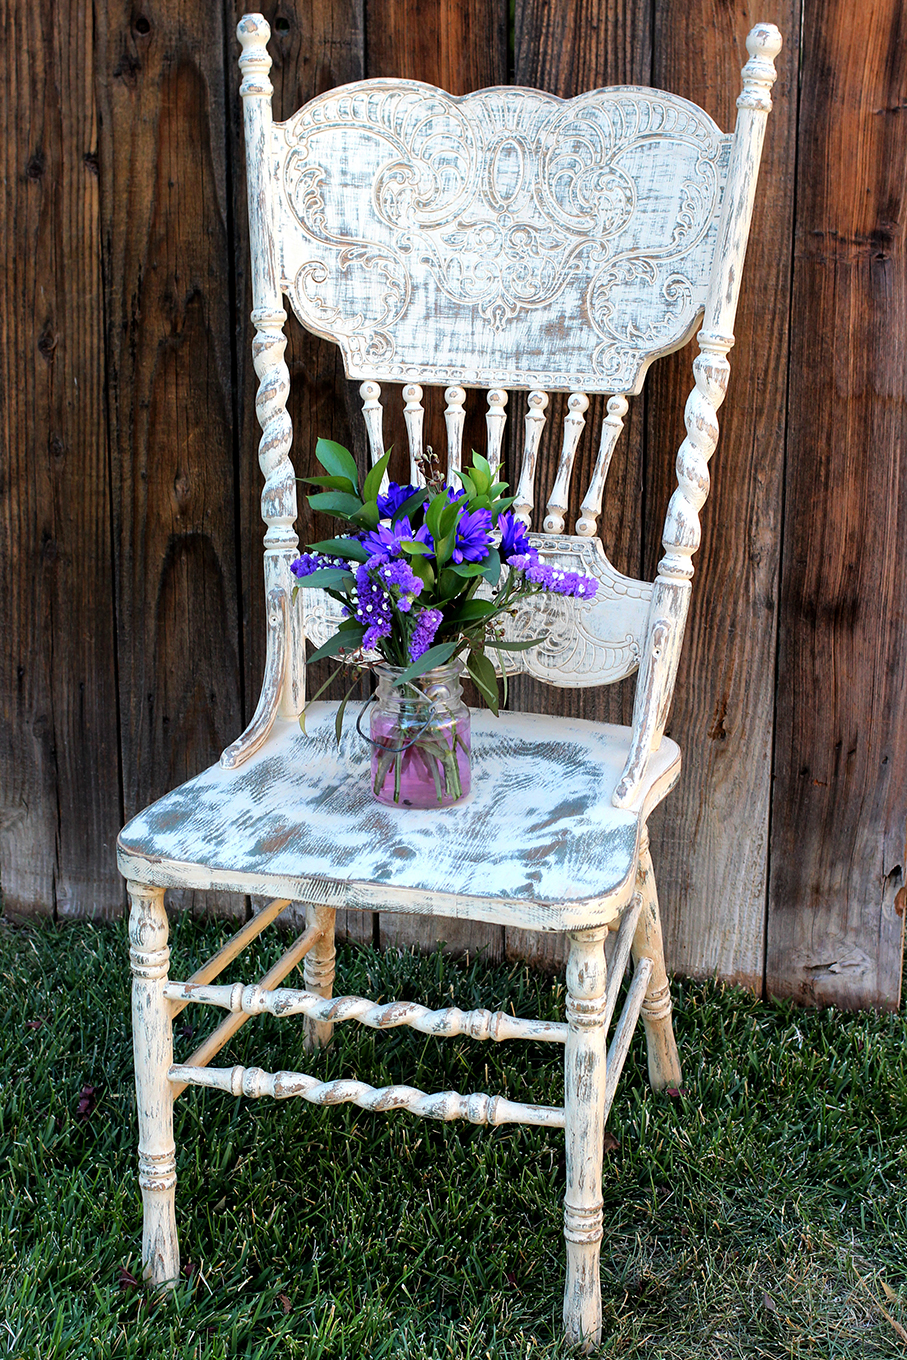 Farm-style carved wood chair w/ spindles